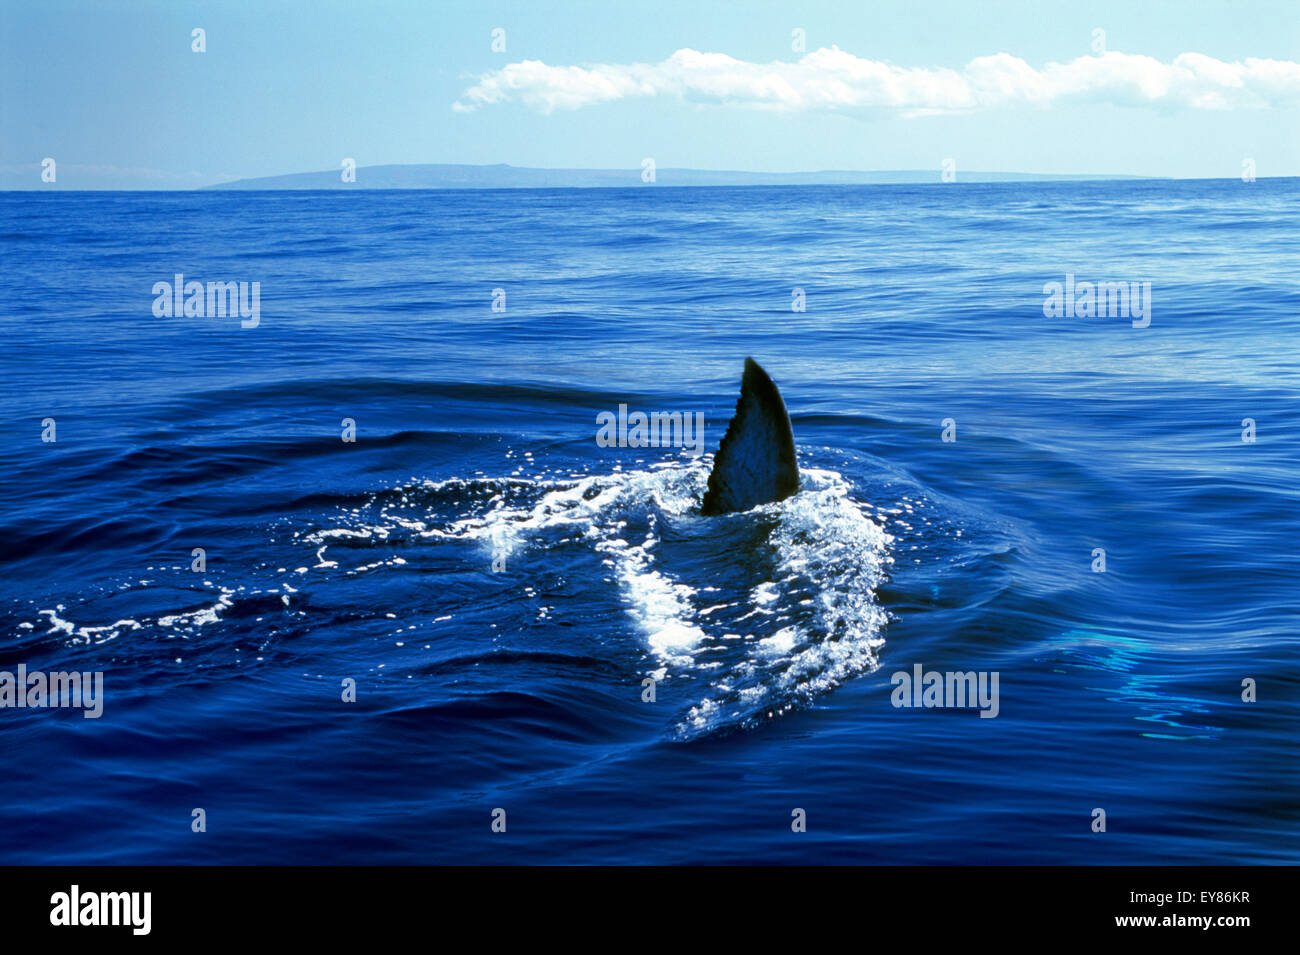 Fin of Great white shark in the Hawaiian Islands breaking surface of blue Pacific Ocean Stock Photo